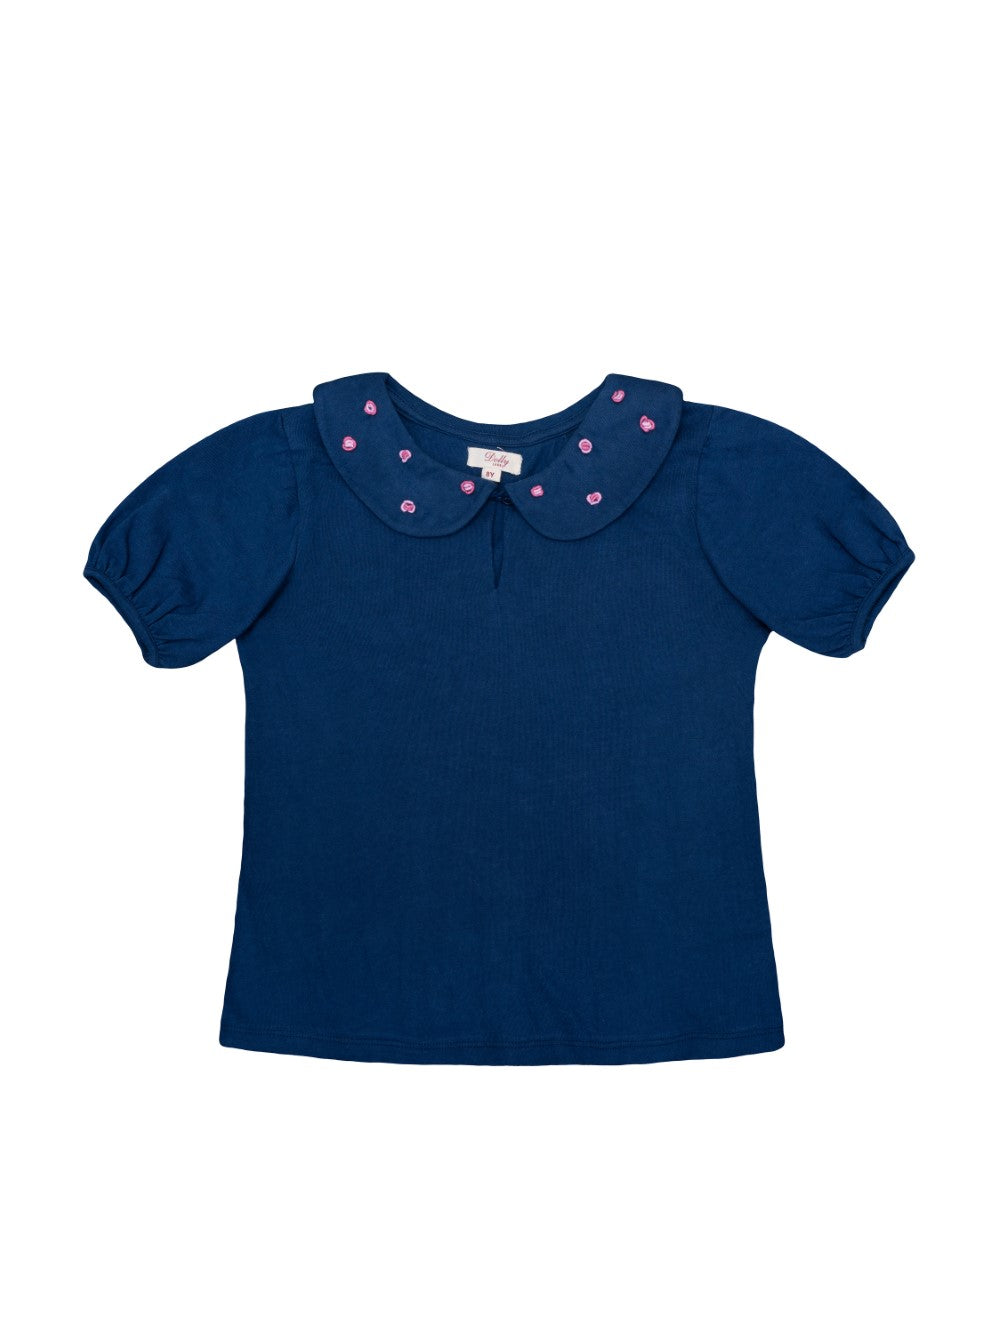 Navy Embroidered Collar Tee